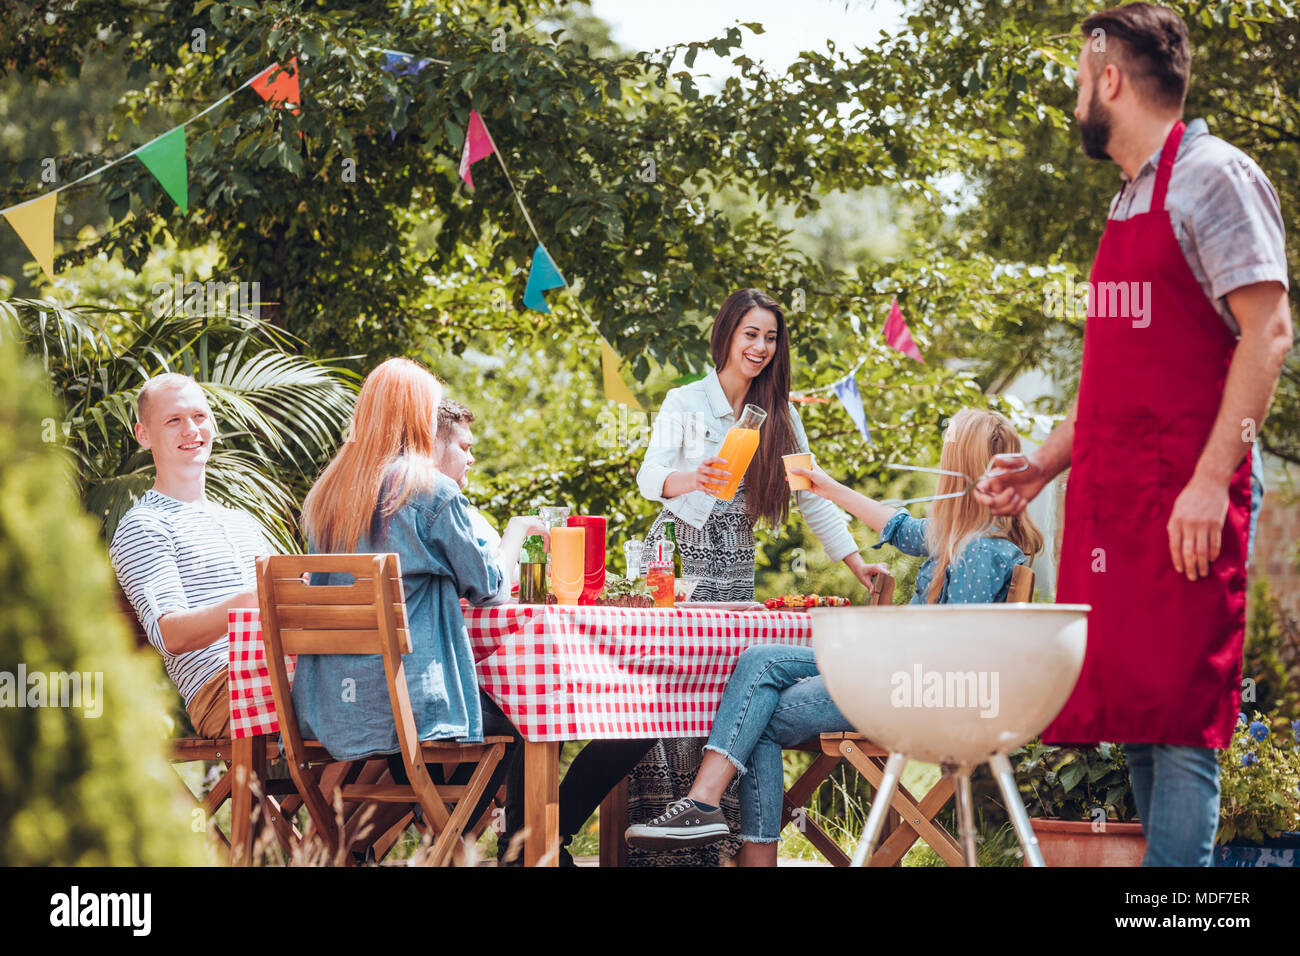 Group of cheerful friends partying and grilling together in the garden - Stock Image